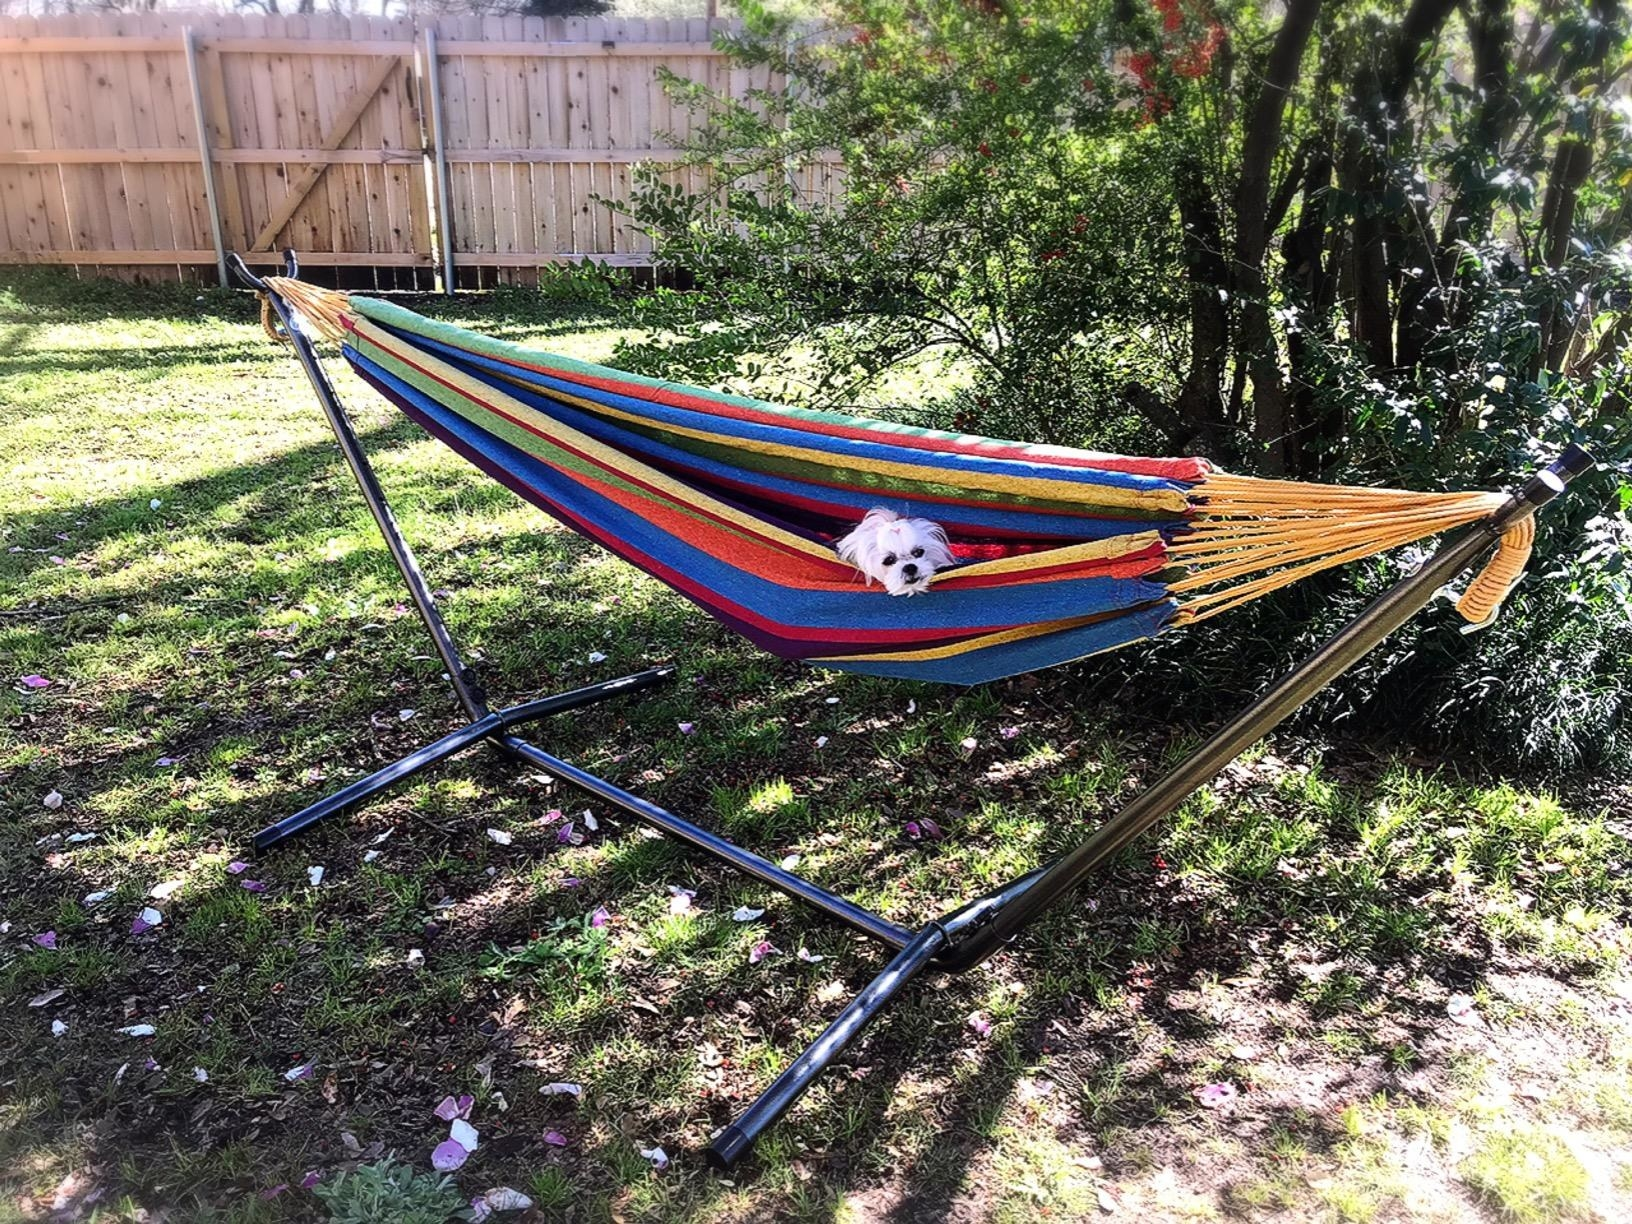 black hammock stand holding colorful striped hammock with a small dog in it